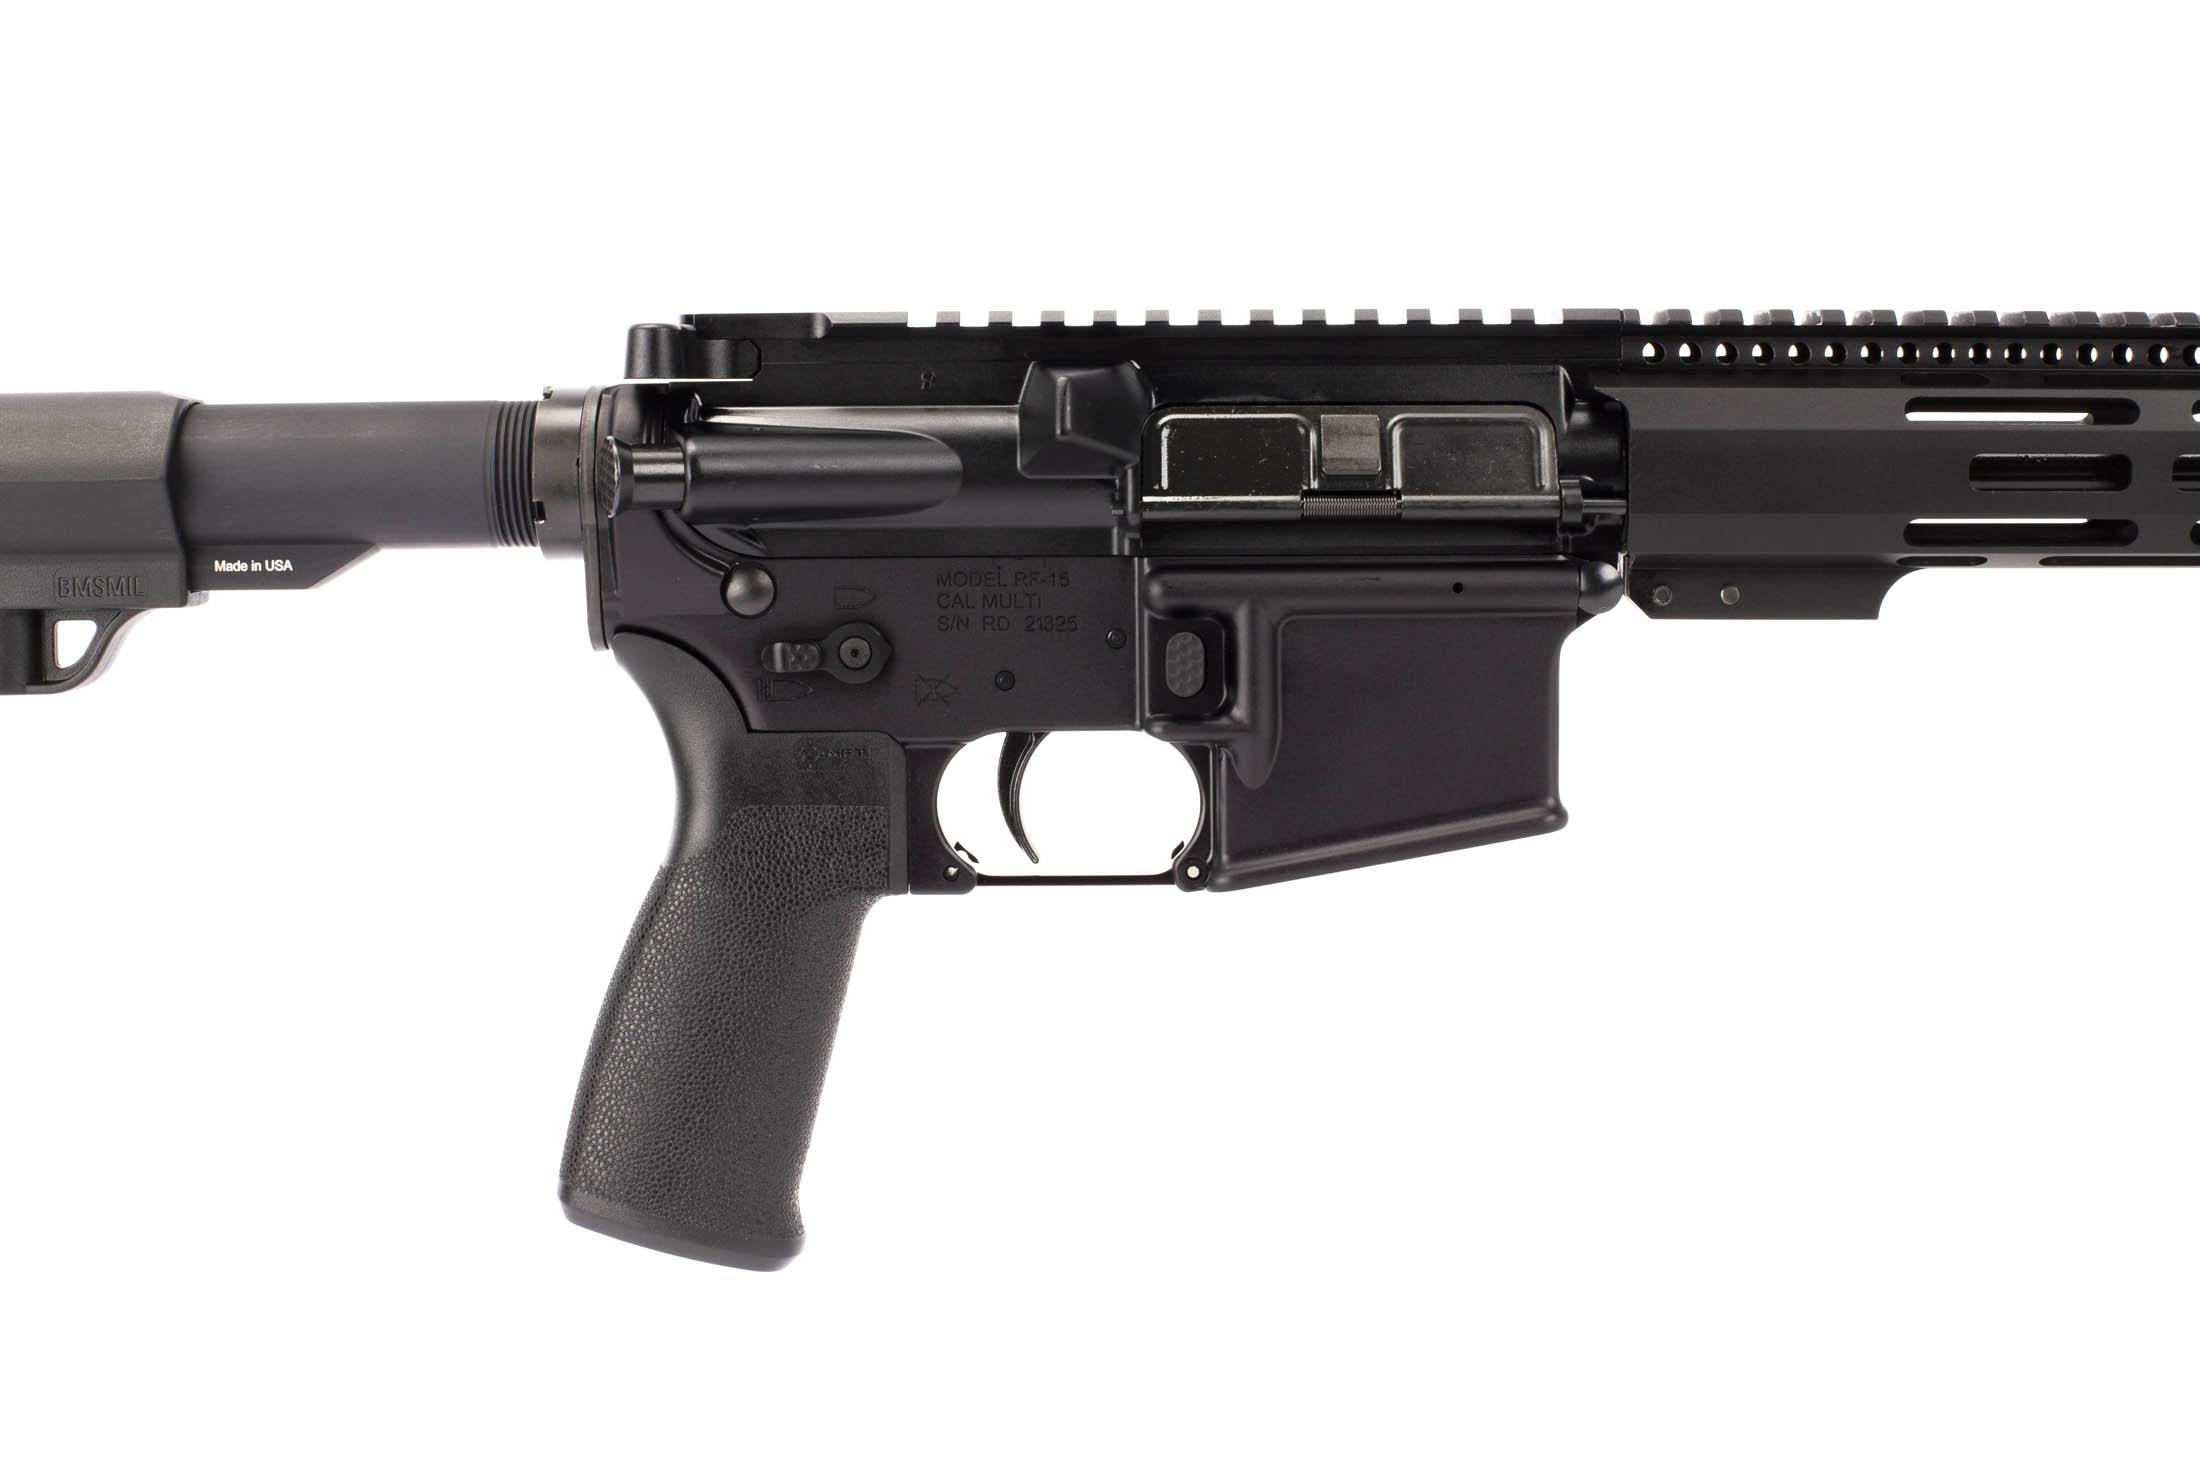 Radical Firearms 16in 5.56 NATO complete AR-15 with Mission First pistol grip, enhanced magazine release, and ambi safety